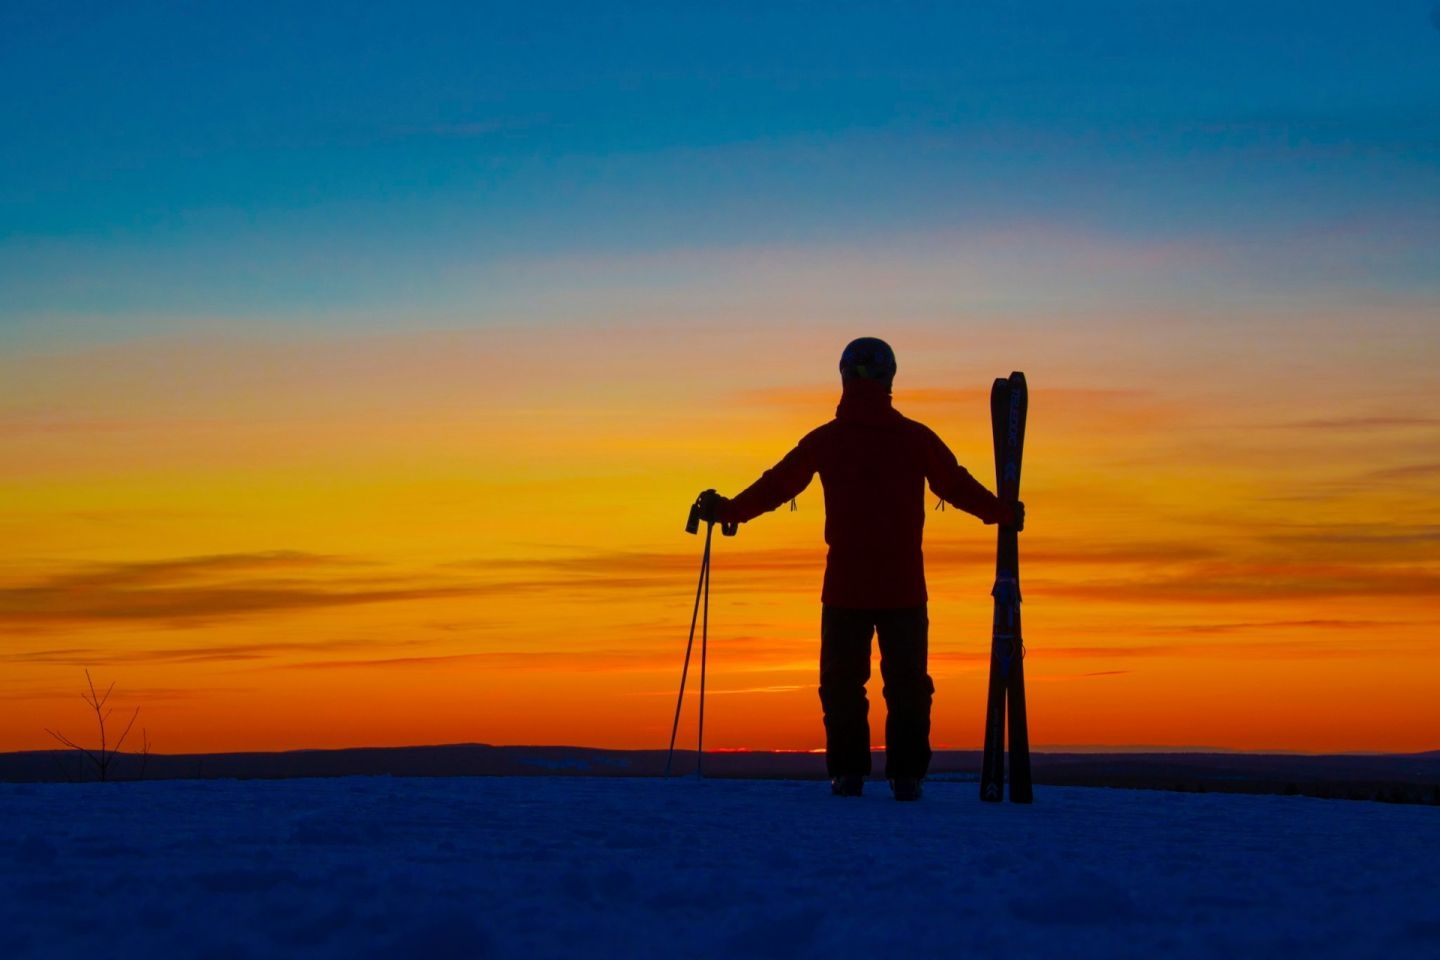 Sunset while skiing in Rovaniemi, Finland